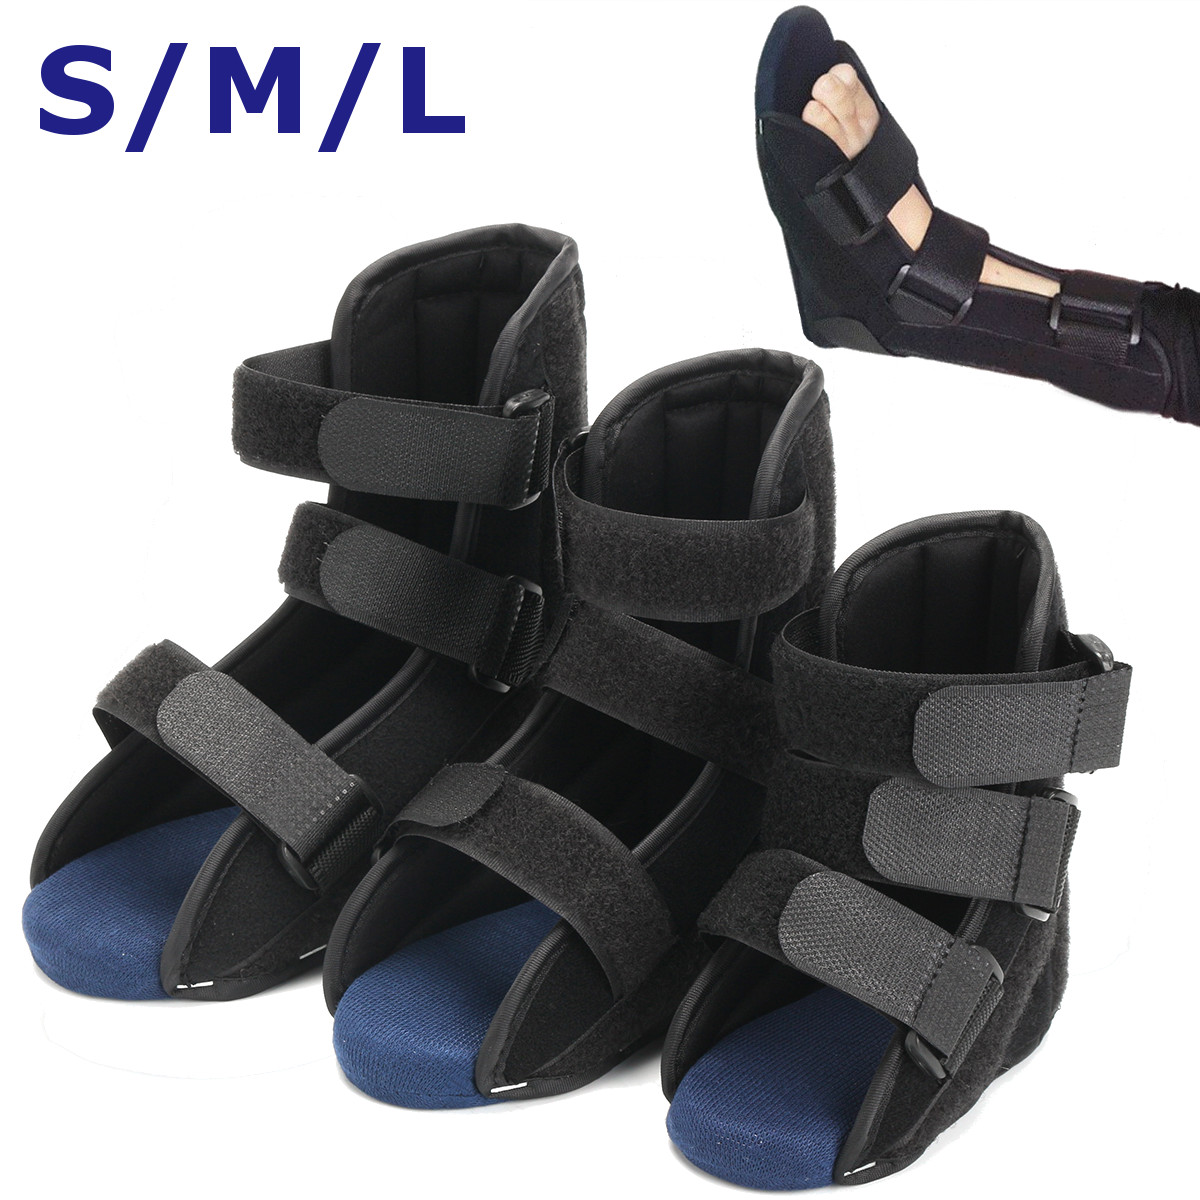 S/M/L Kids Ankle Brace Support Splint Foot Orthosis Drop Guard Sprain Orthosis Fractures Ankle Braces For First Aid Plantar